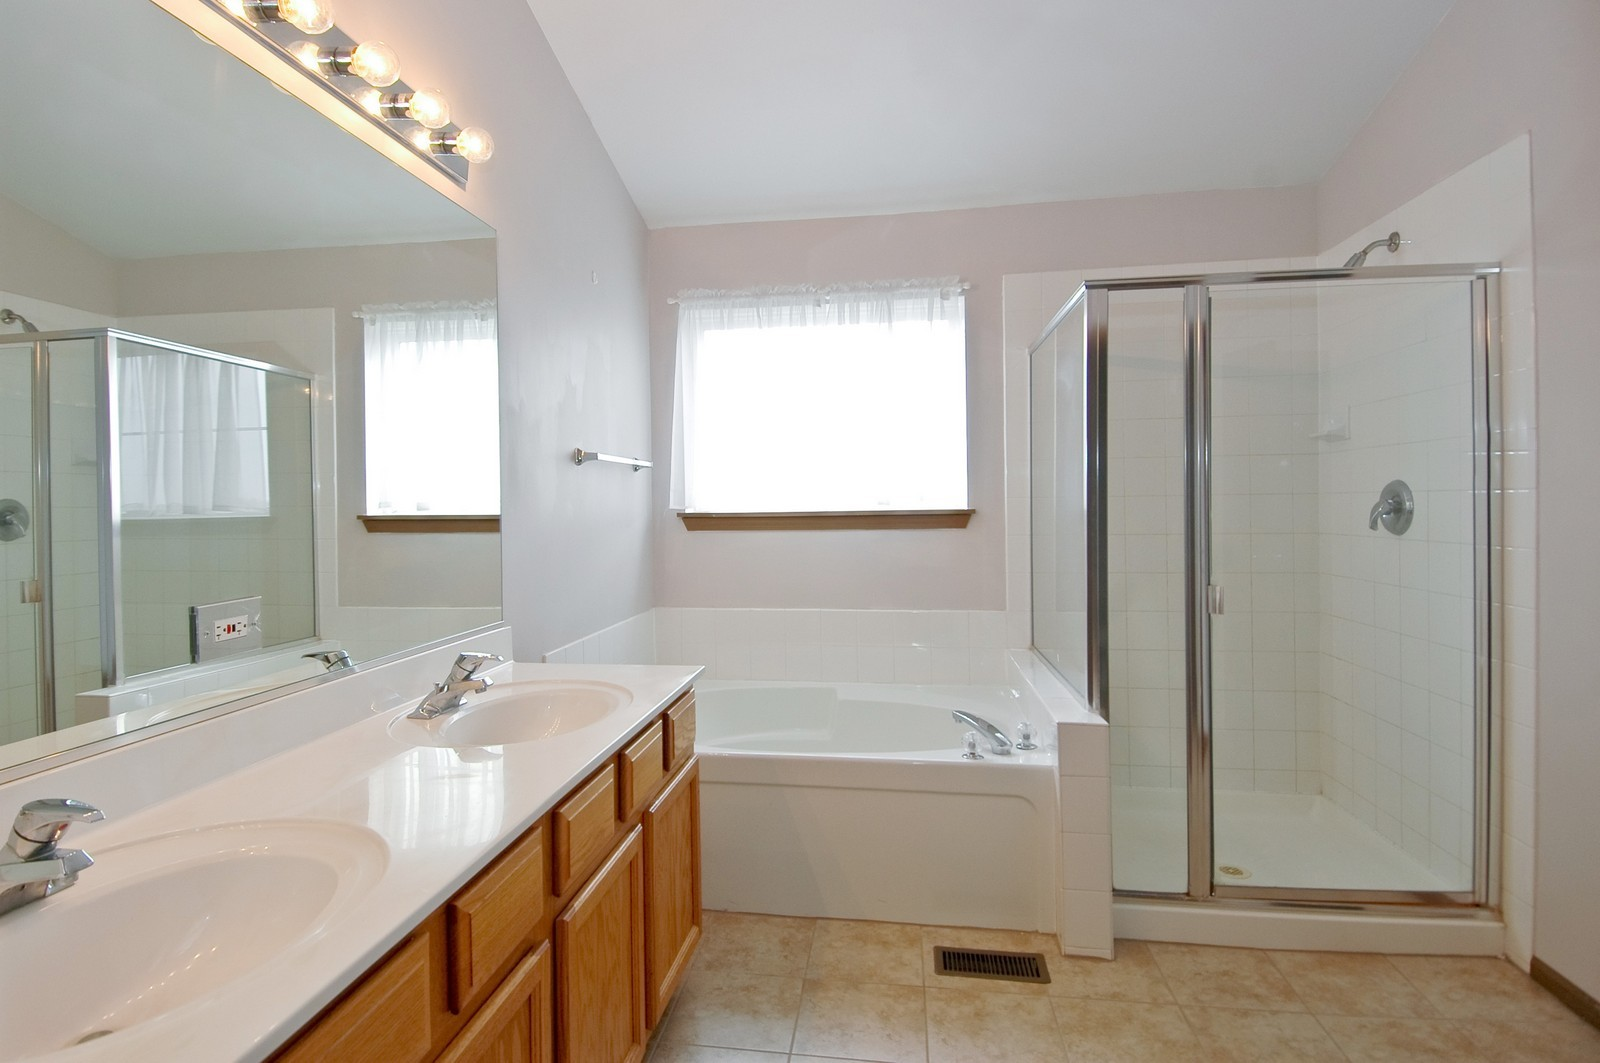 Real Estate Photography - 2988 Langston, St Charles, IL, 60175 - Master Bathroom